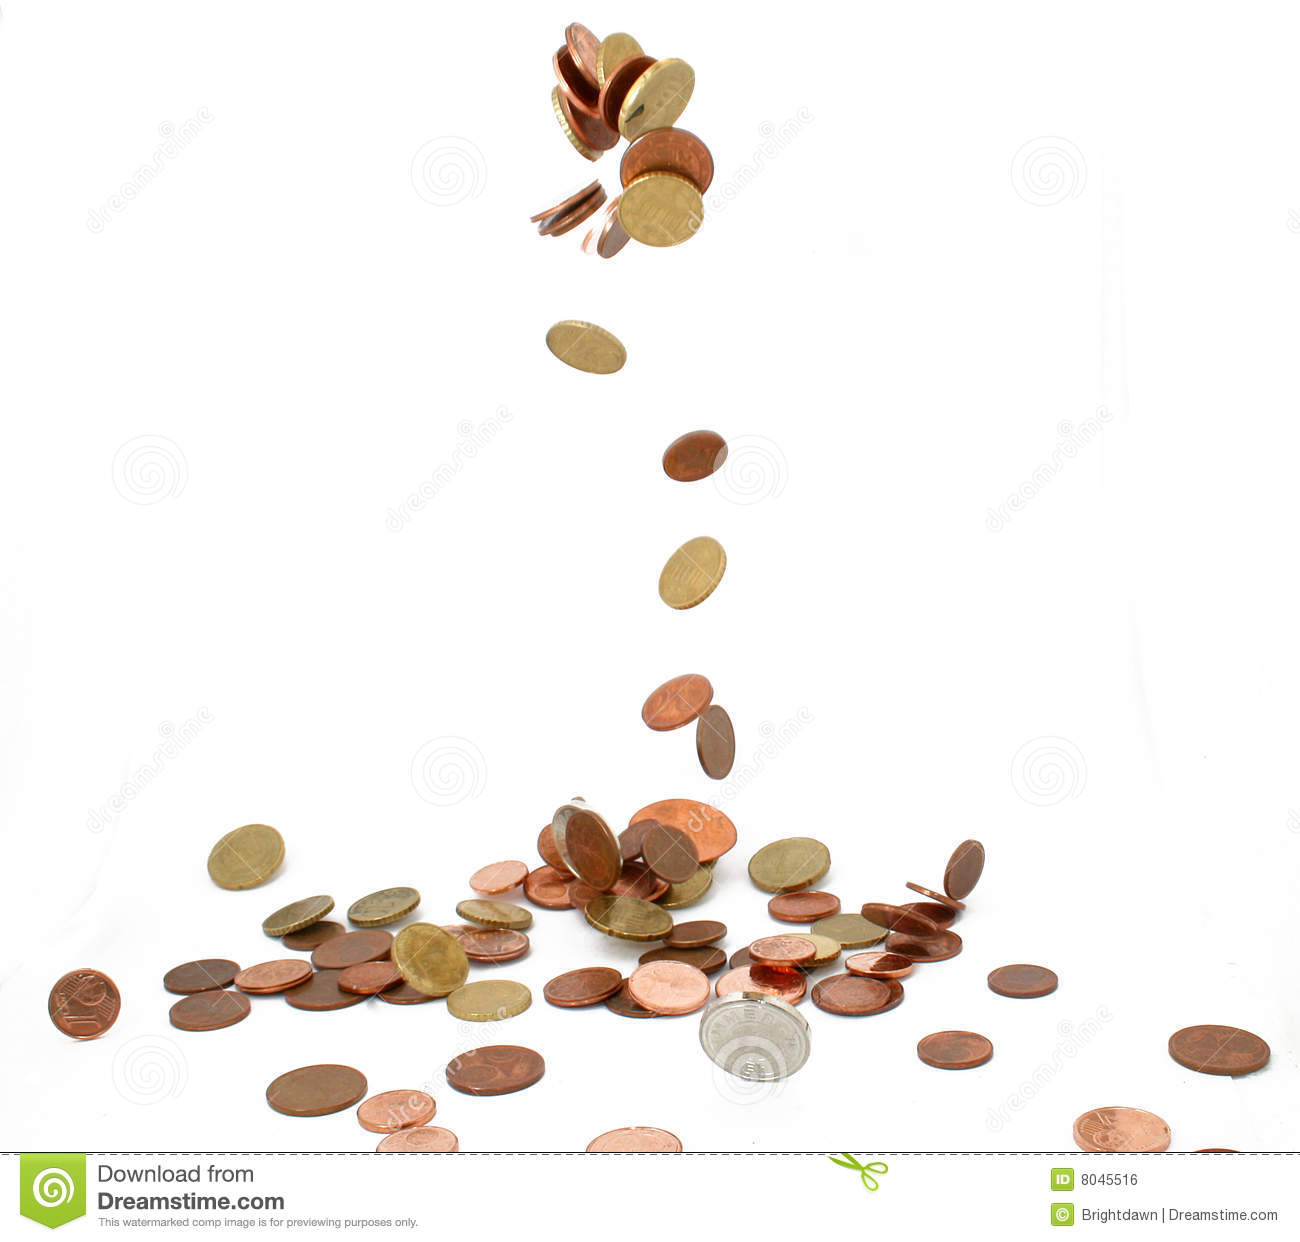 Falling Coins Royalty Free Stock Image - Image: 8045516